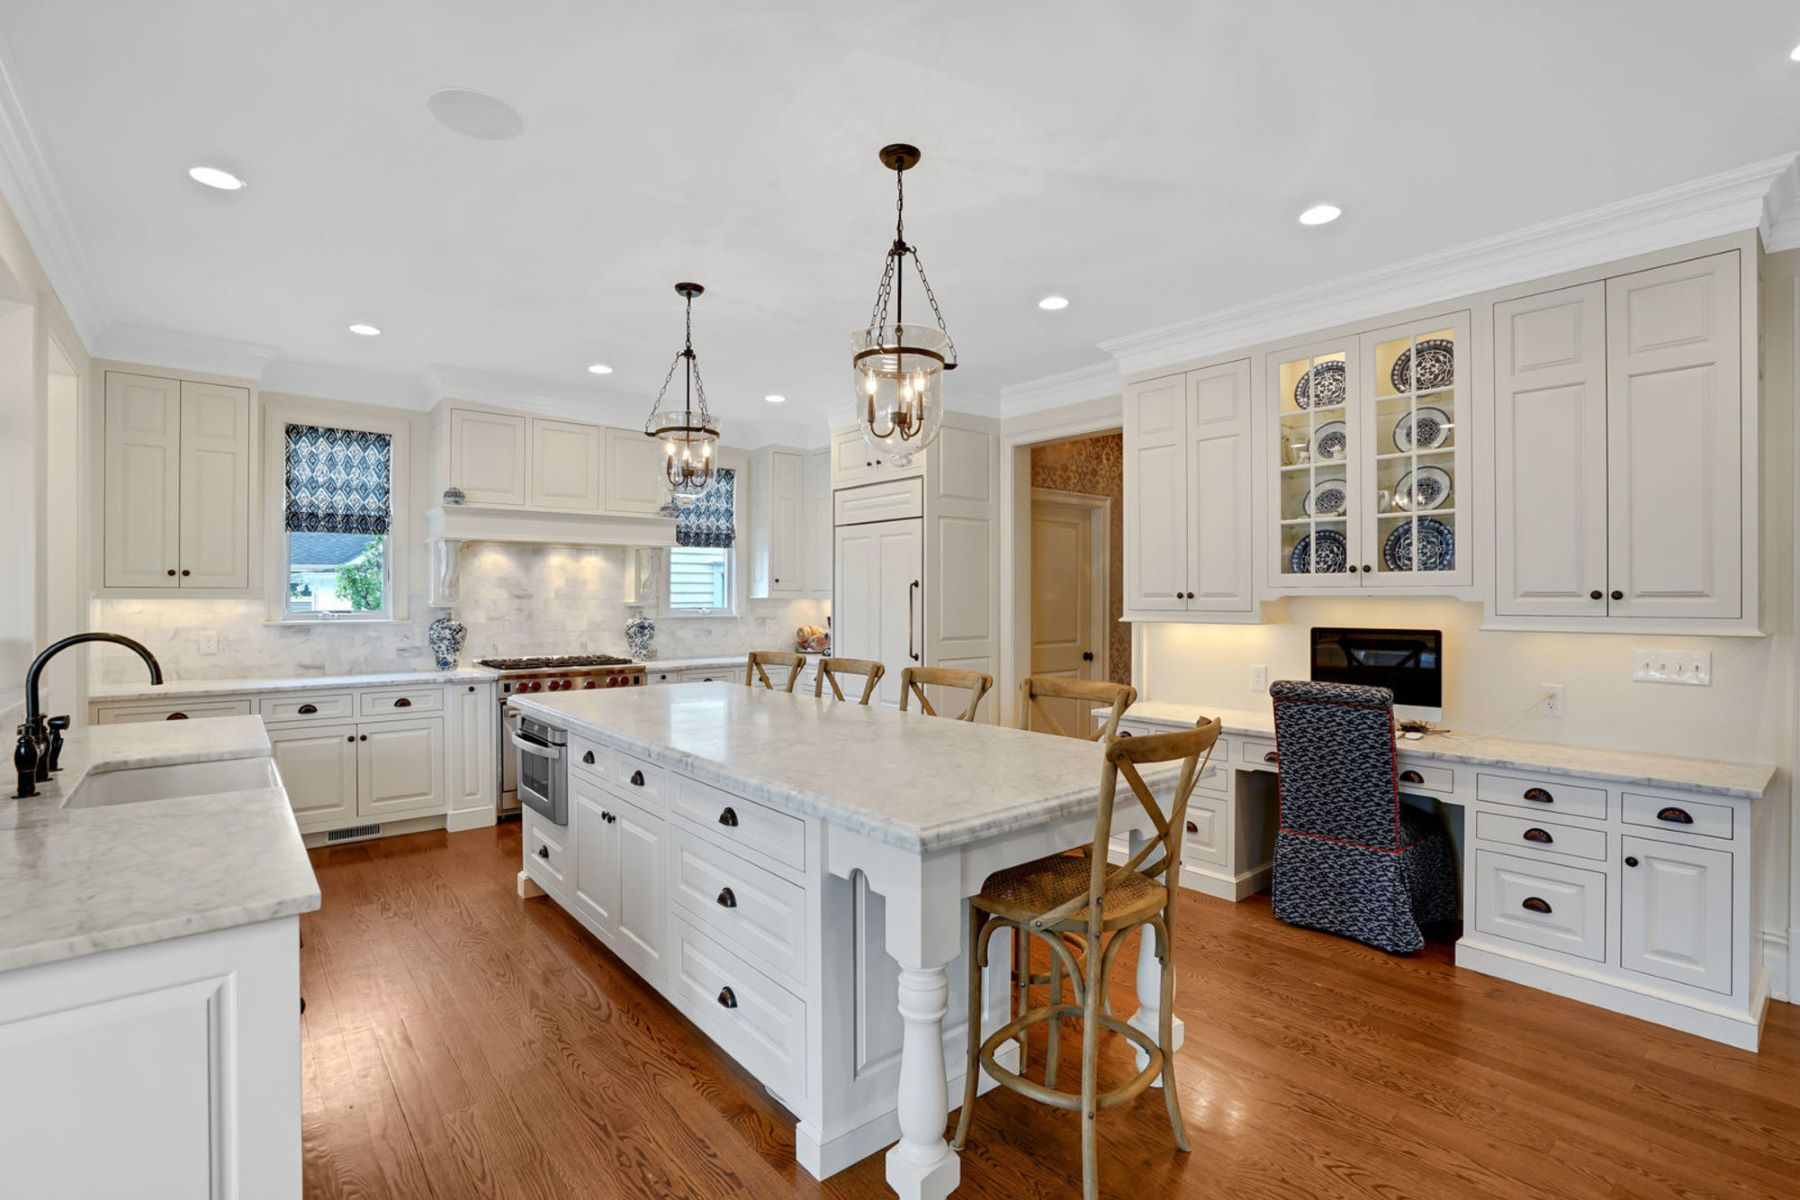 Single Family Homes for Sale at Exquisite and Elegant 408 Washington Avenue Avon by the Sea, New Jersey 07717 United States